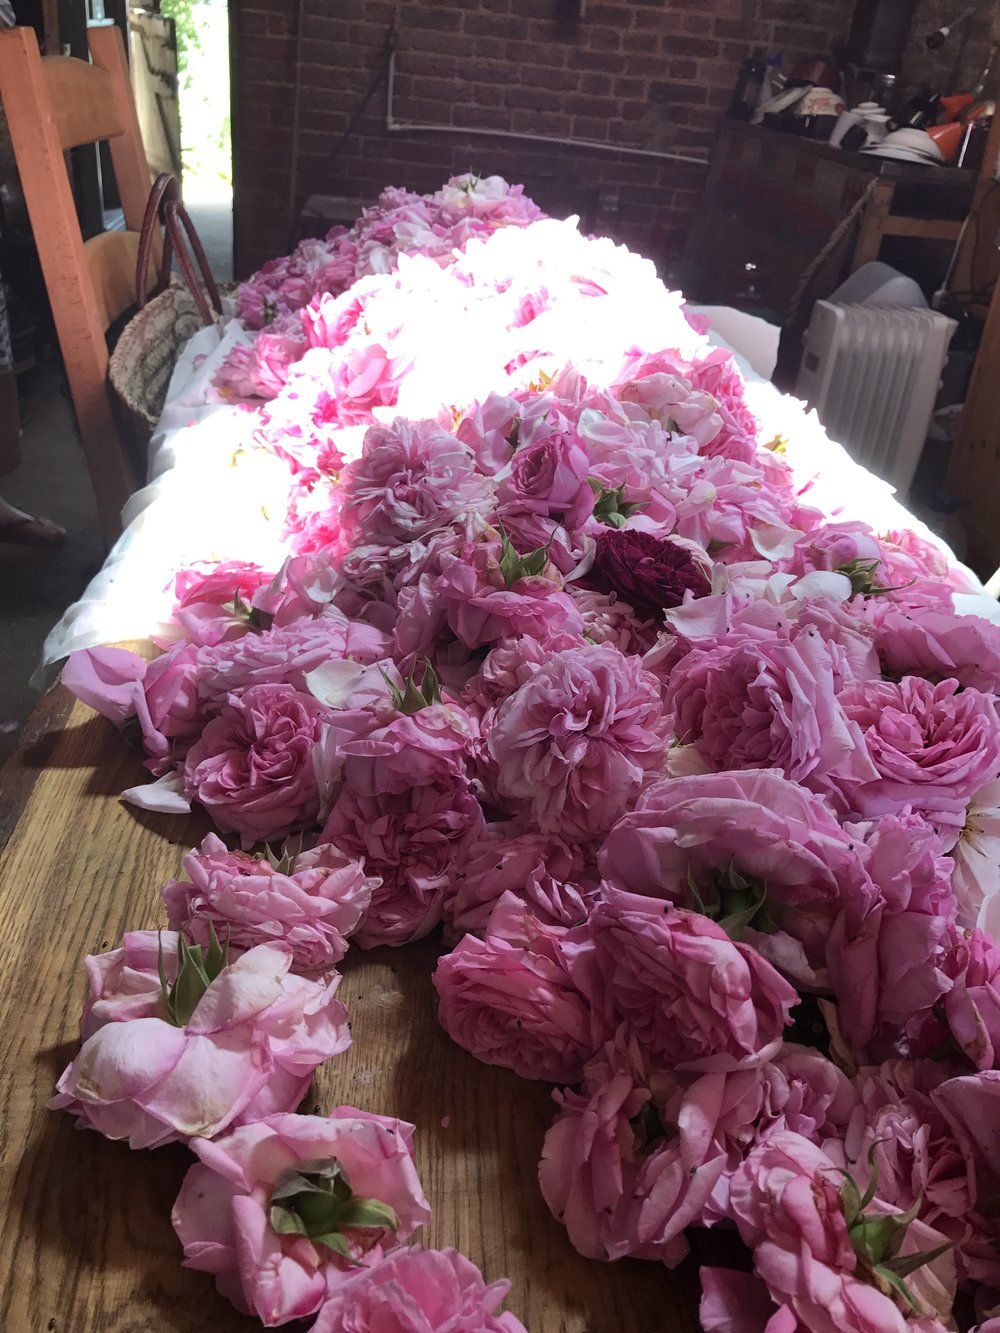 An abundance of roses on the barn table